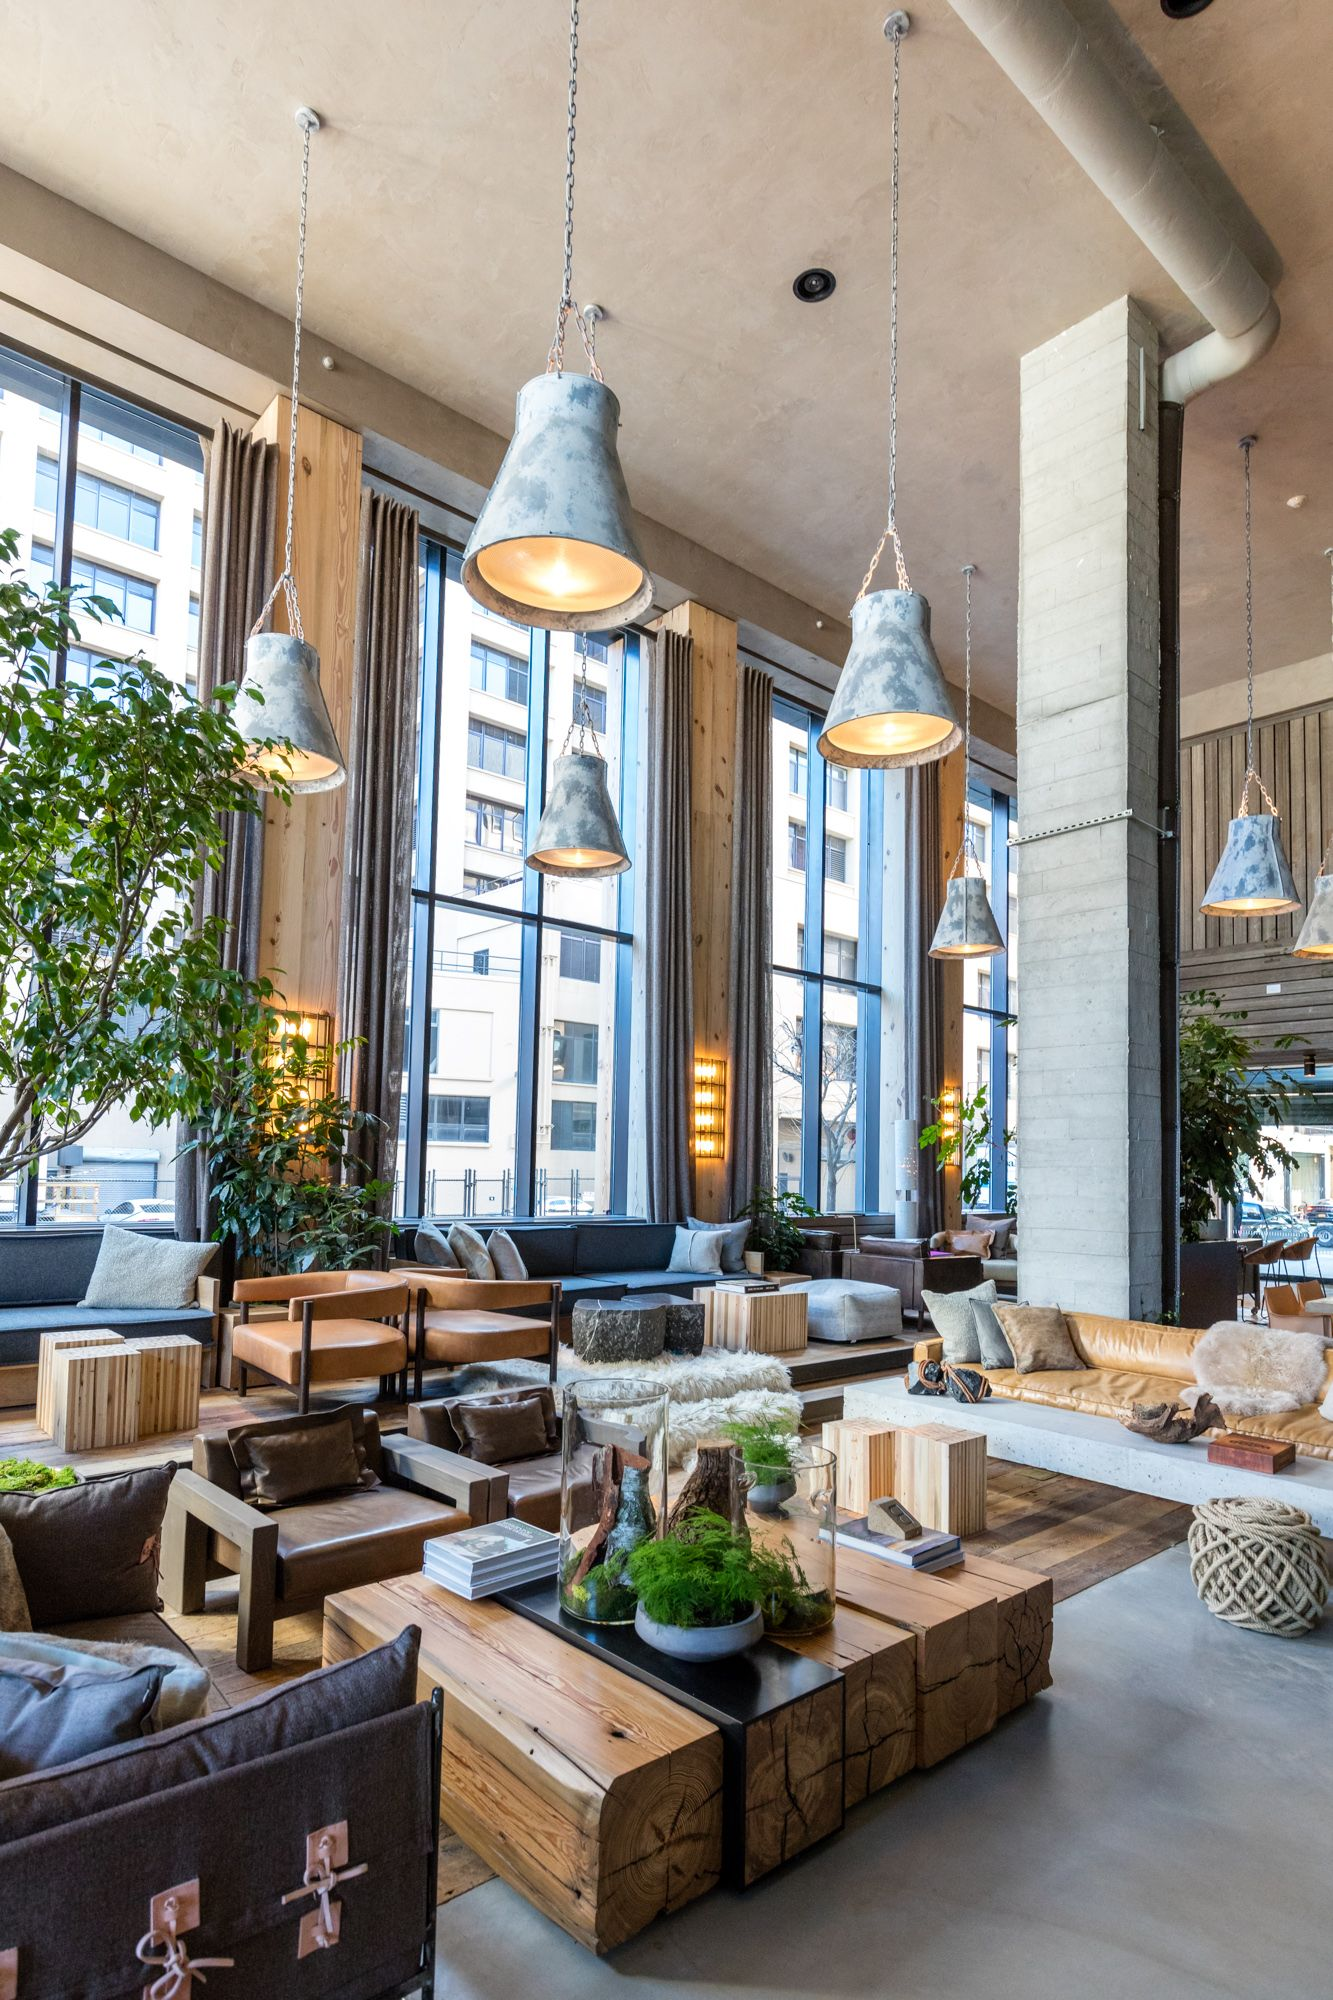 Small Hotel Room Design: In Brooklyn Bridge Park, An Eco-friendly Hotel Sprouts On